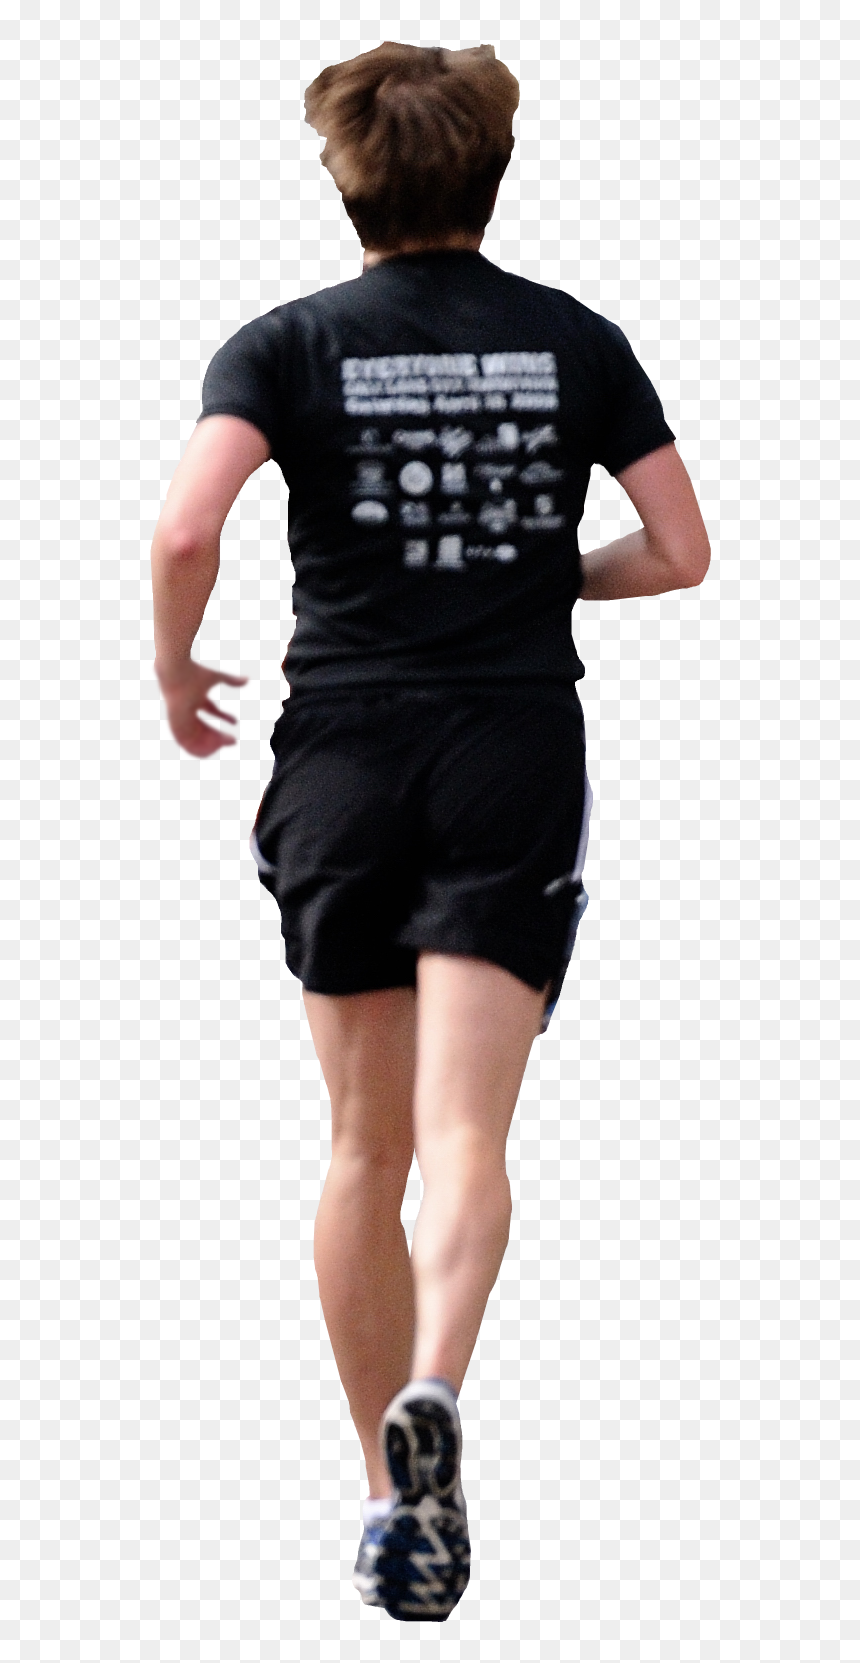 thumb image running man back png transparent png vhv running man back png transparent png